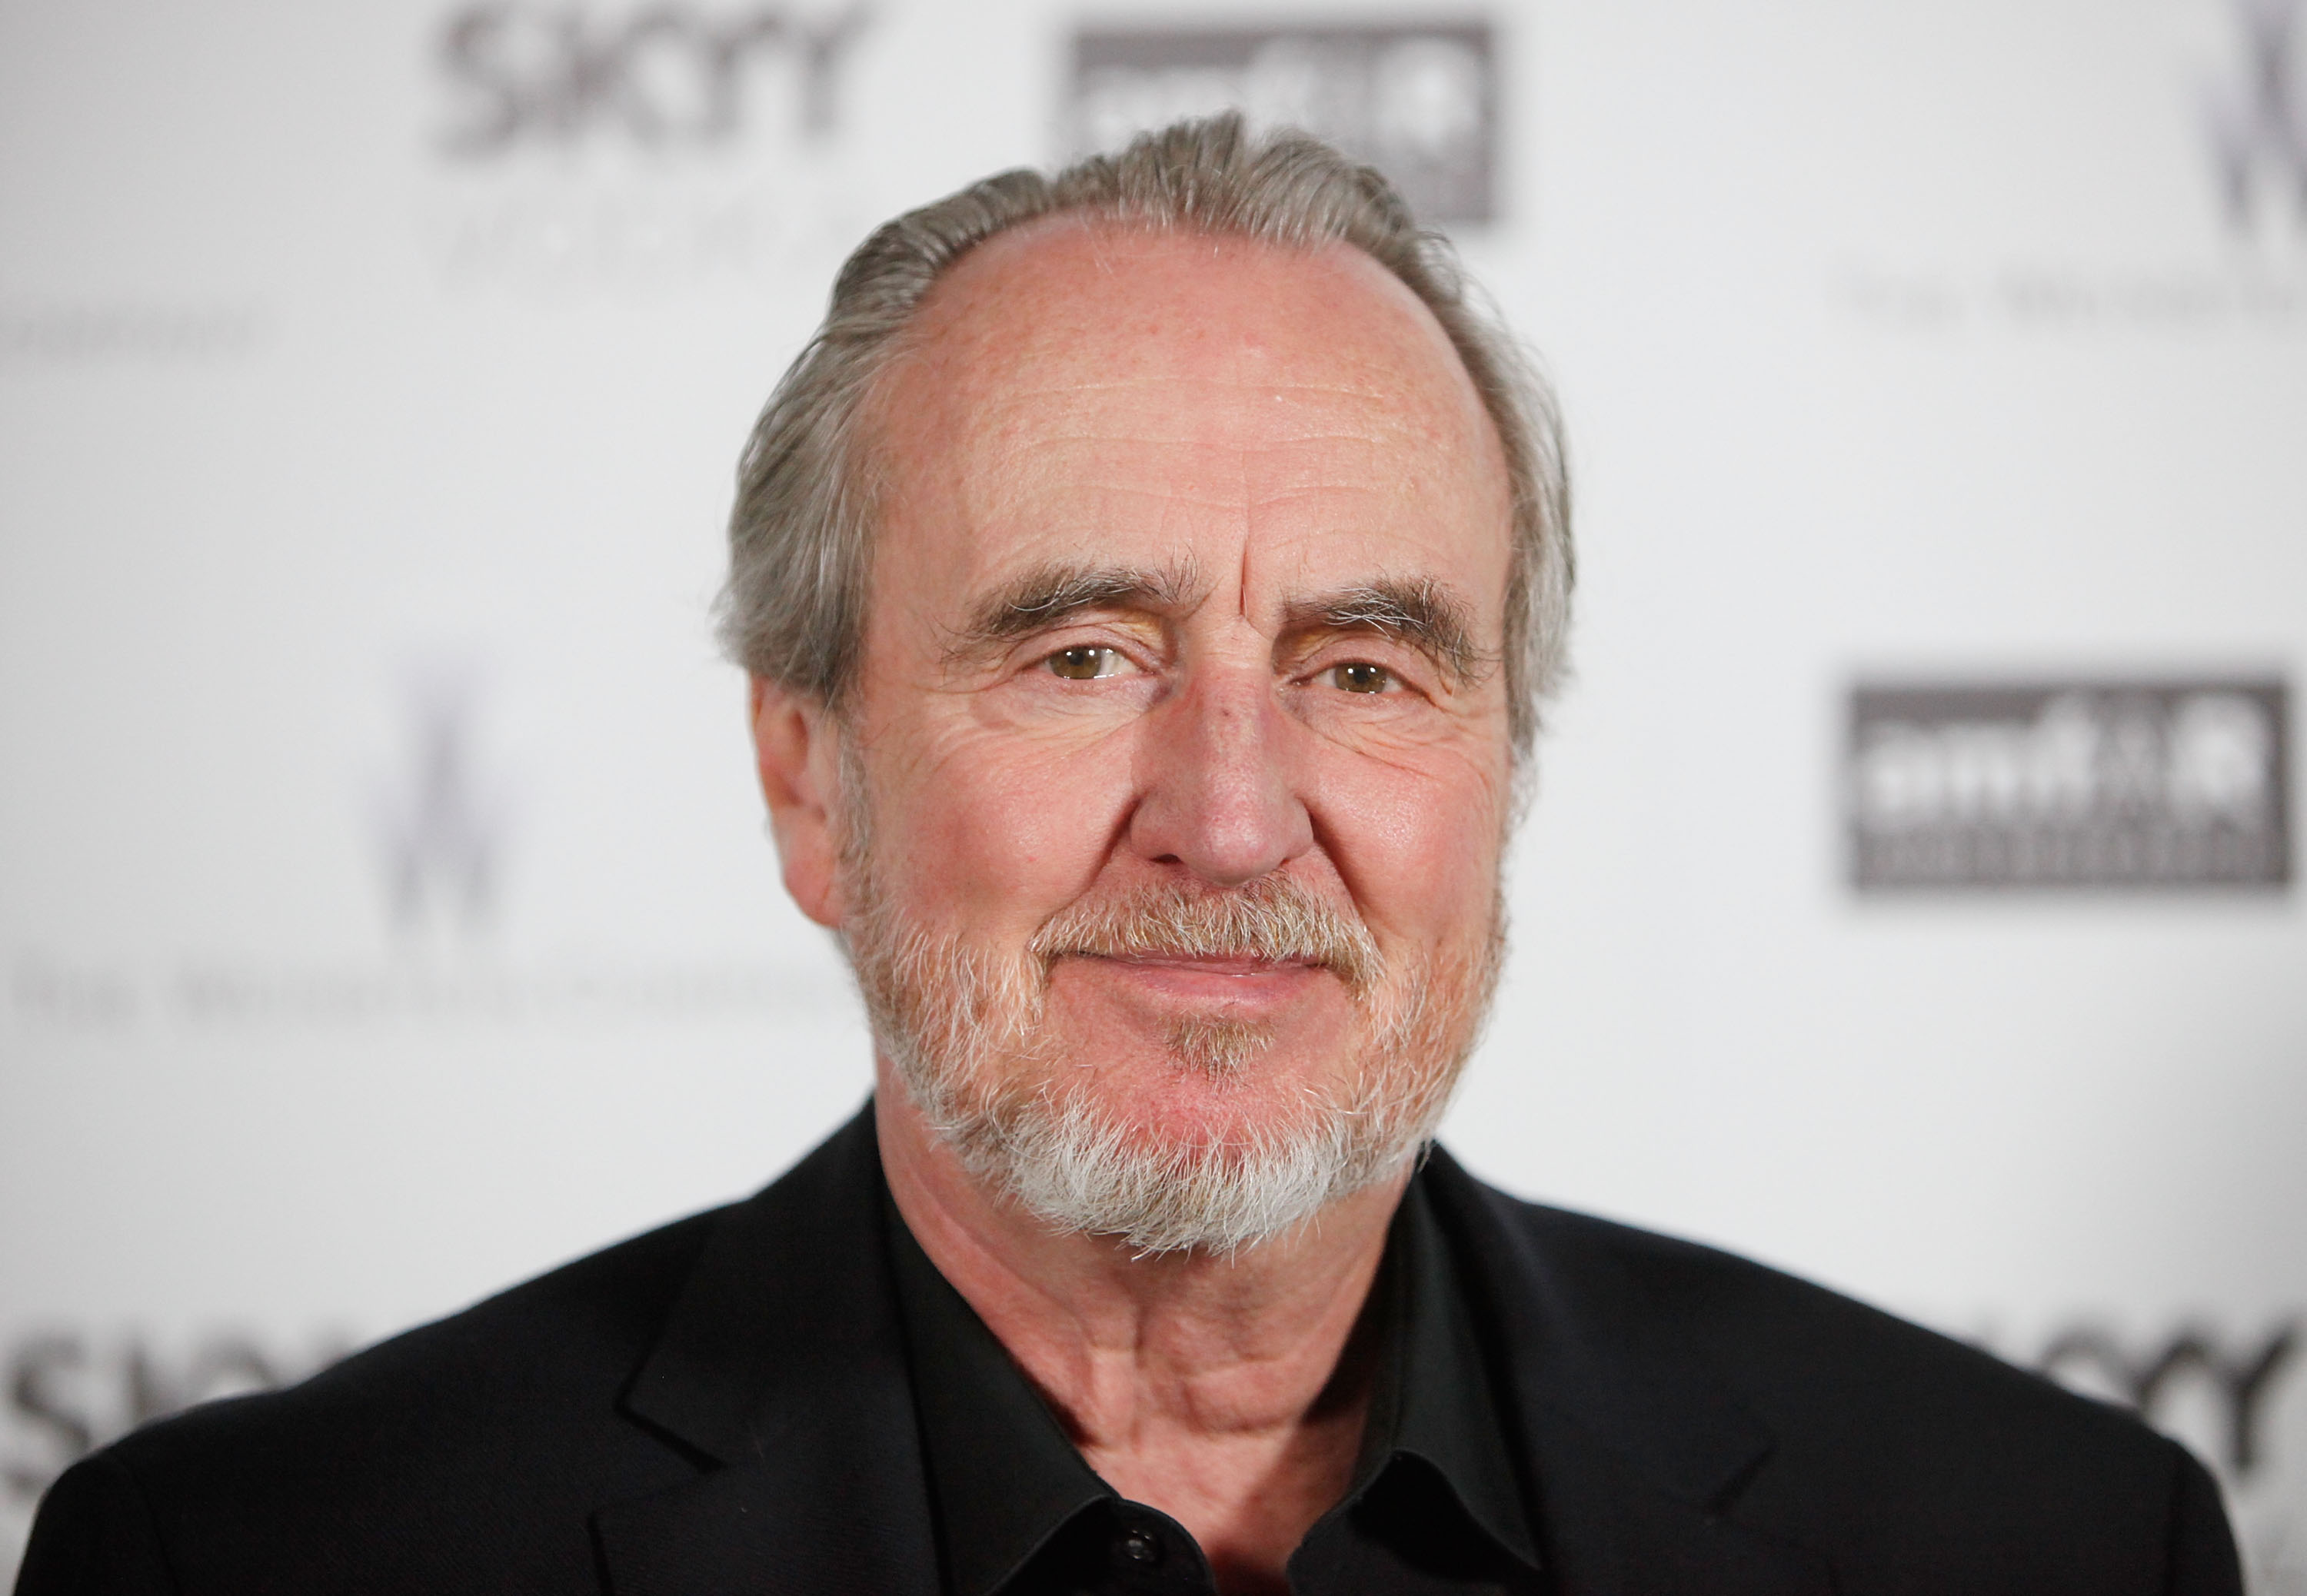 Wes Craven arrives at The Weinstein Company and Dimension Films AFM cocktail party held at Hotel Shangri-La on November 7, 2010 in Santa Monica, California